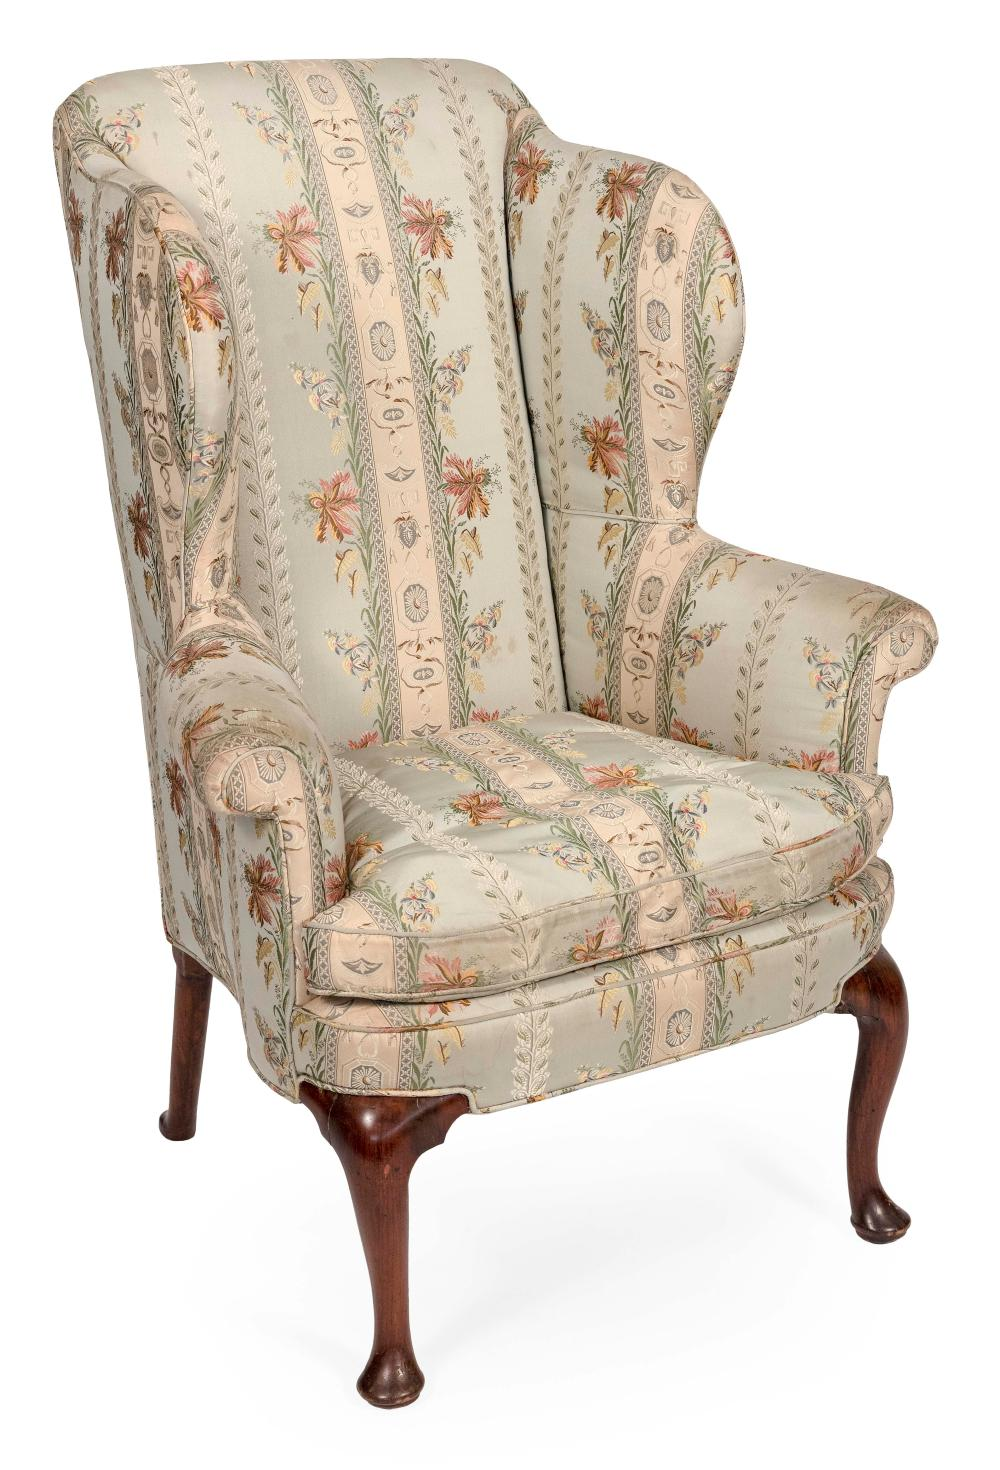 """QUEEN ANNE WING BACK CHAIR New England, Mid-18th Century Back height 48"""". Seat height 17.5"""". Width at arms 33.5"""". Seat depth 20""""."""